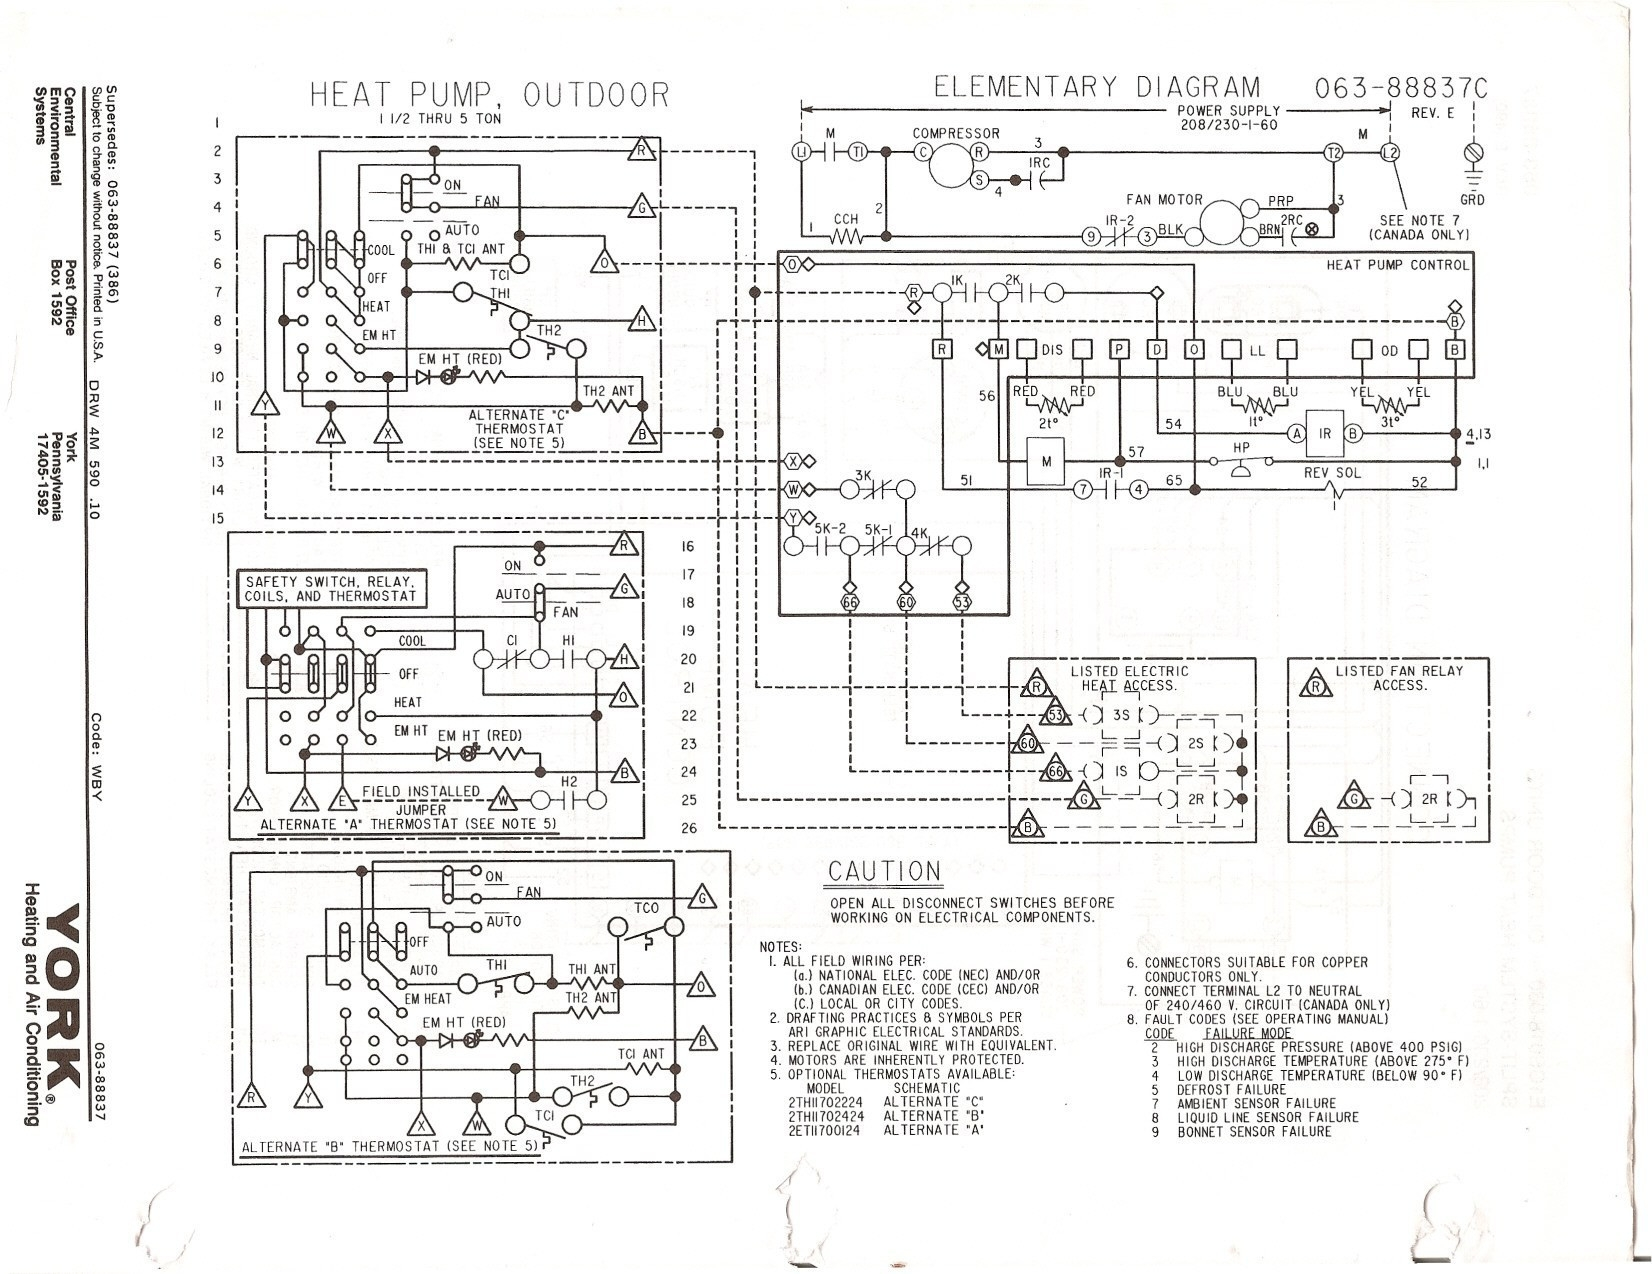 goodman defrost board wiring diagram Collection-york hvac wiring schematics wire center u2022 rh linxglobal co york heating and air conditioning wiring 6-q